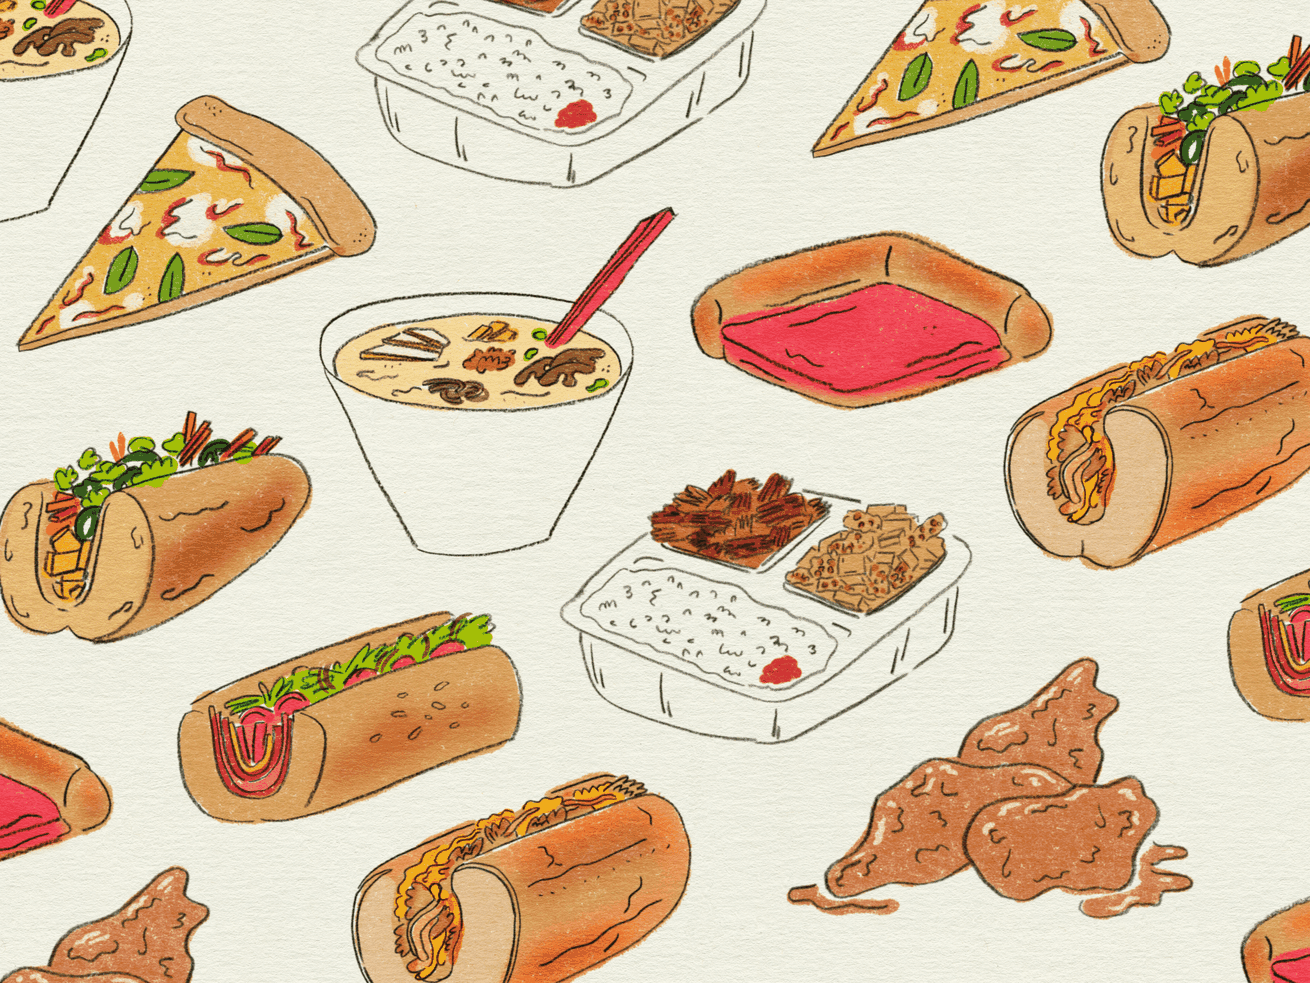 an illustration of hoagies, cheesesteaks, pizza, ramen, and tempeh in a repeating pattern